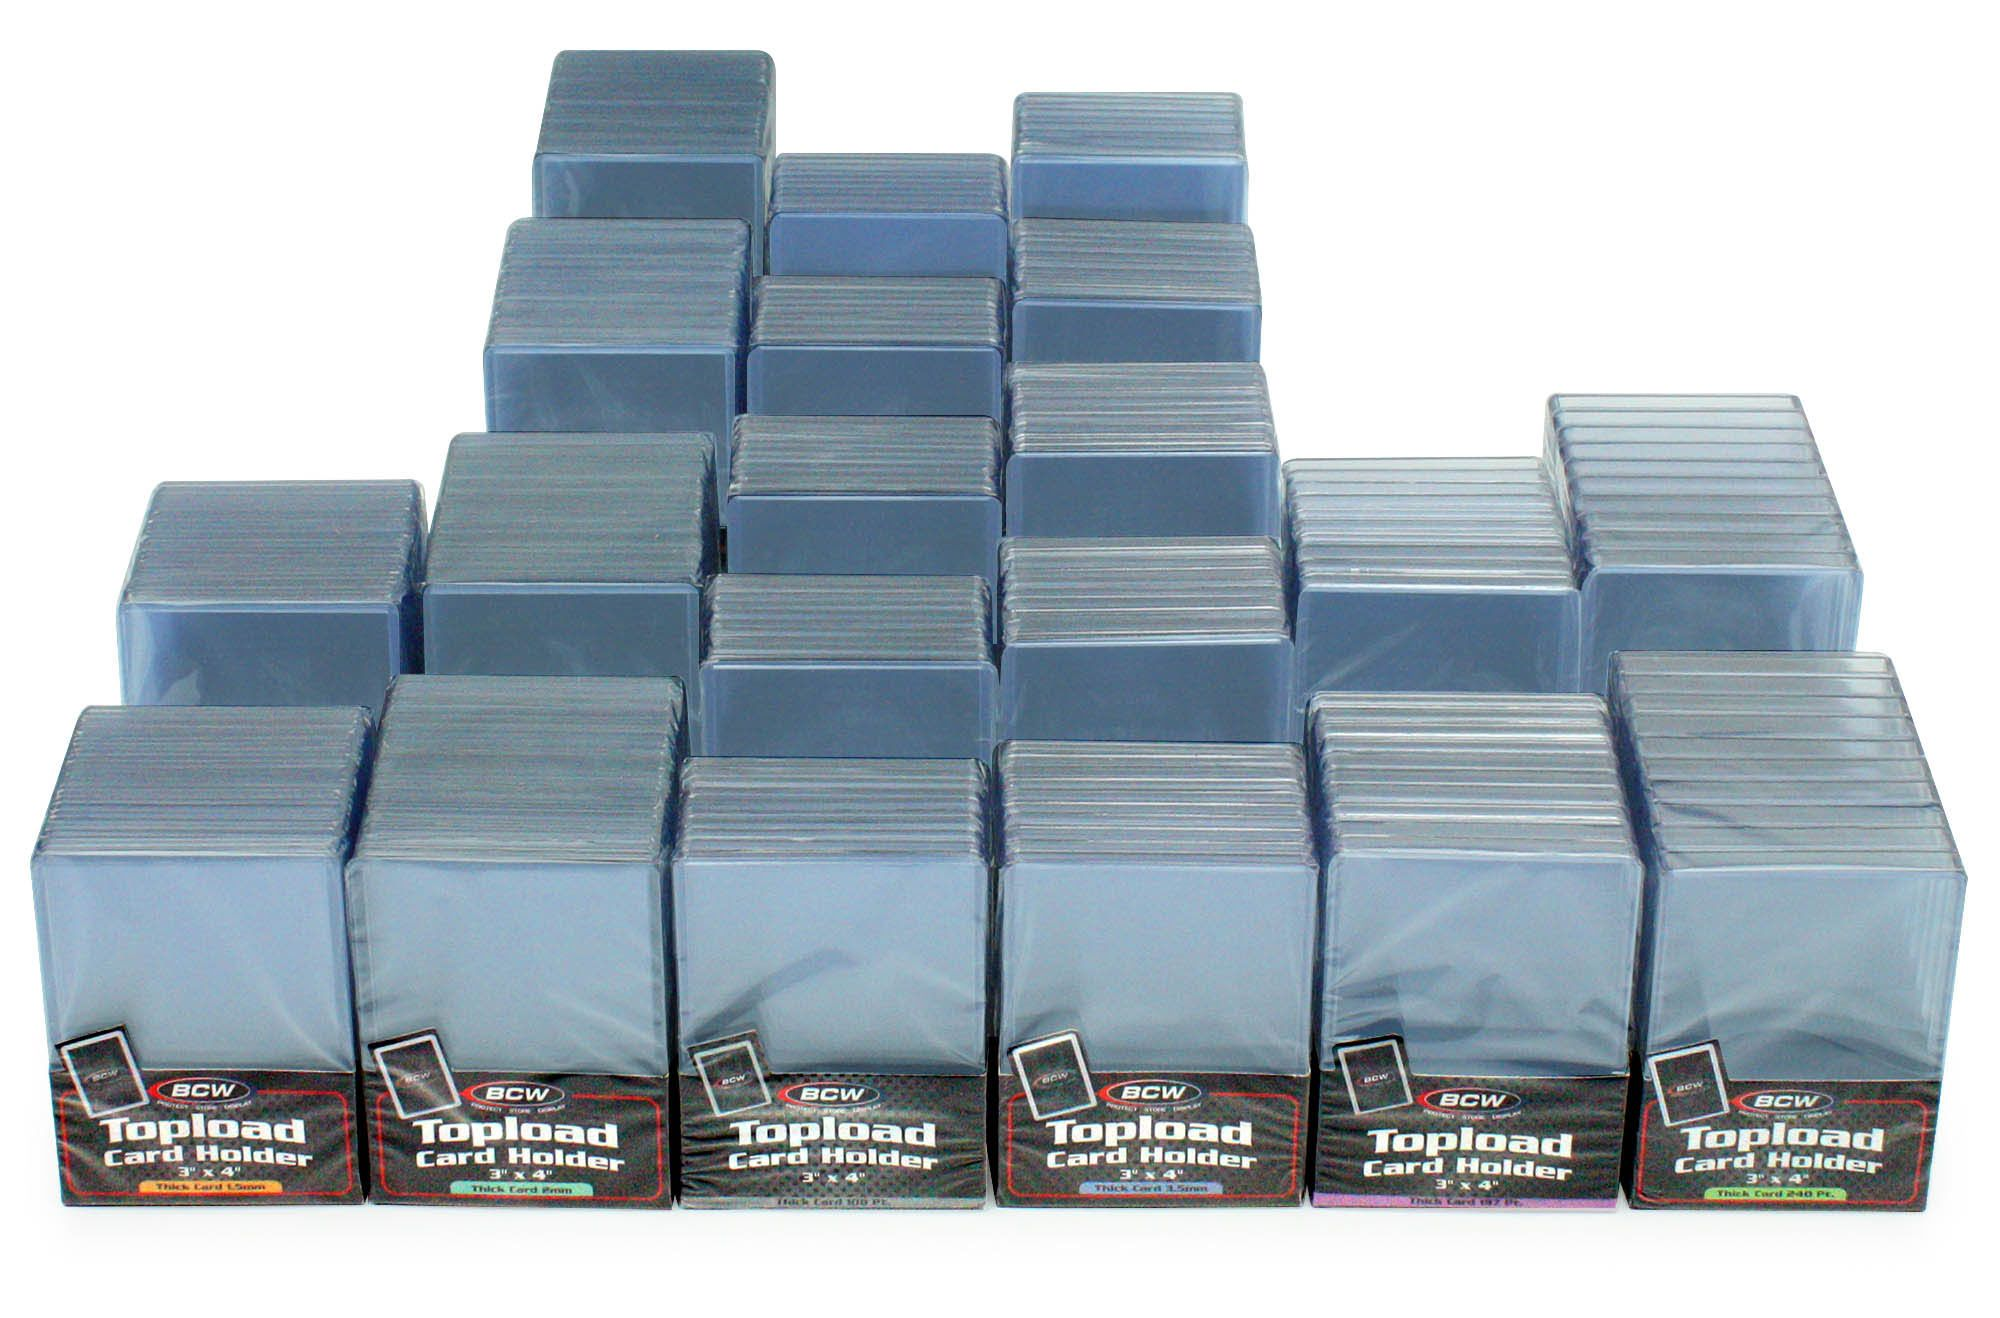 Mixed Case Of Thick Card Topload Holders In 2020 Card Supplies Cards Sports Cards Collection